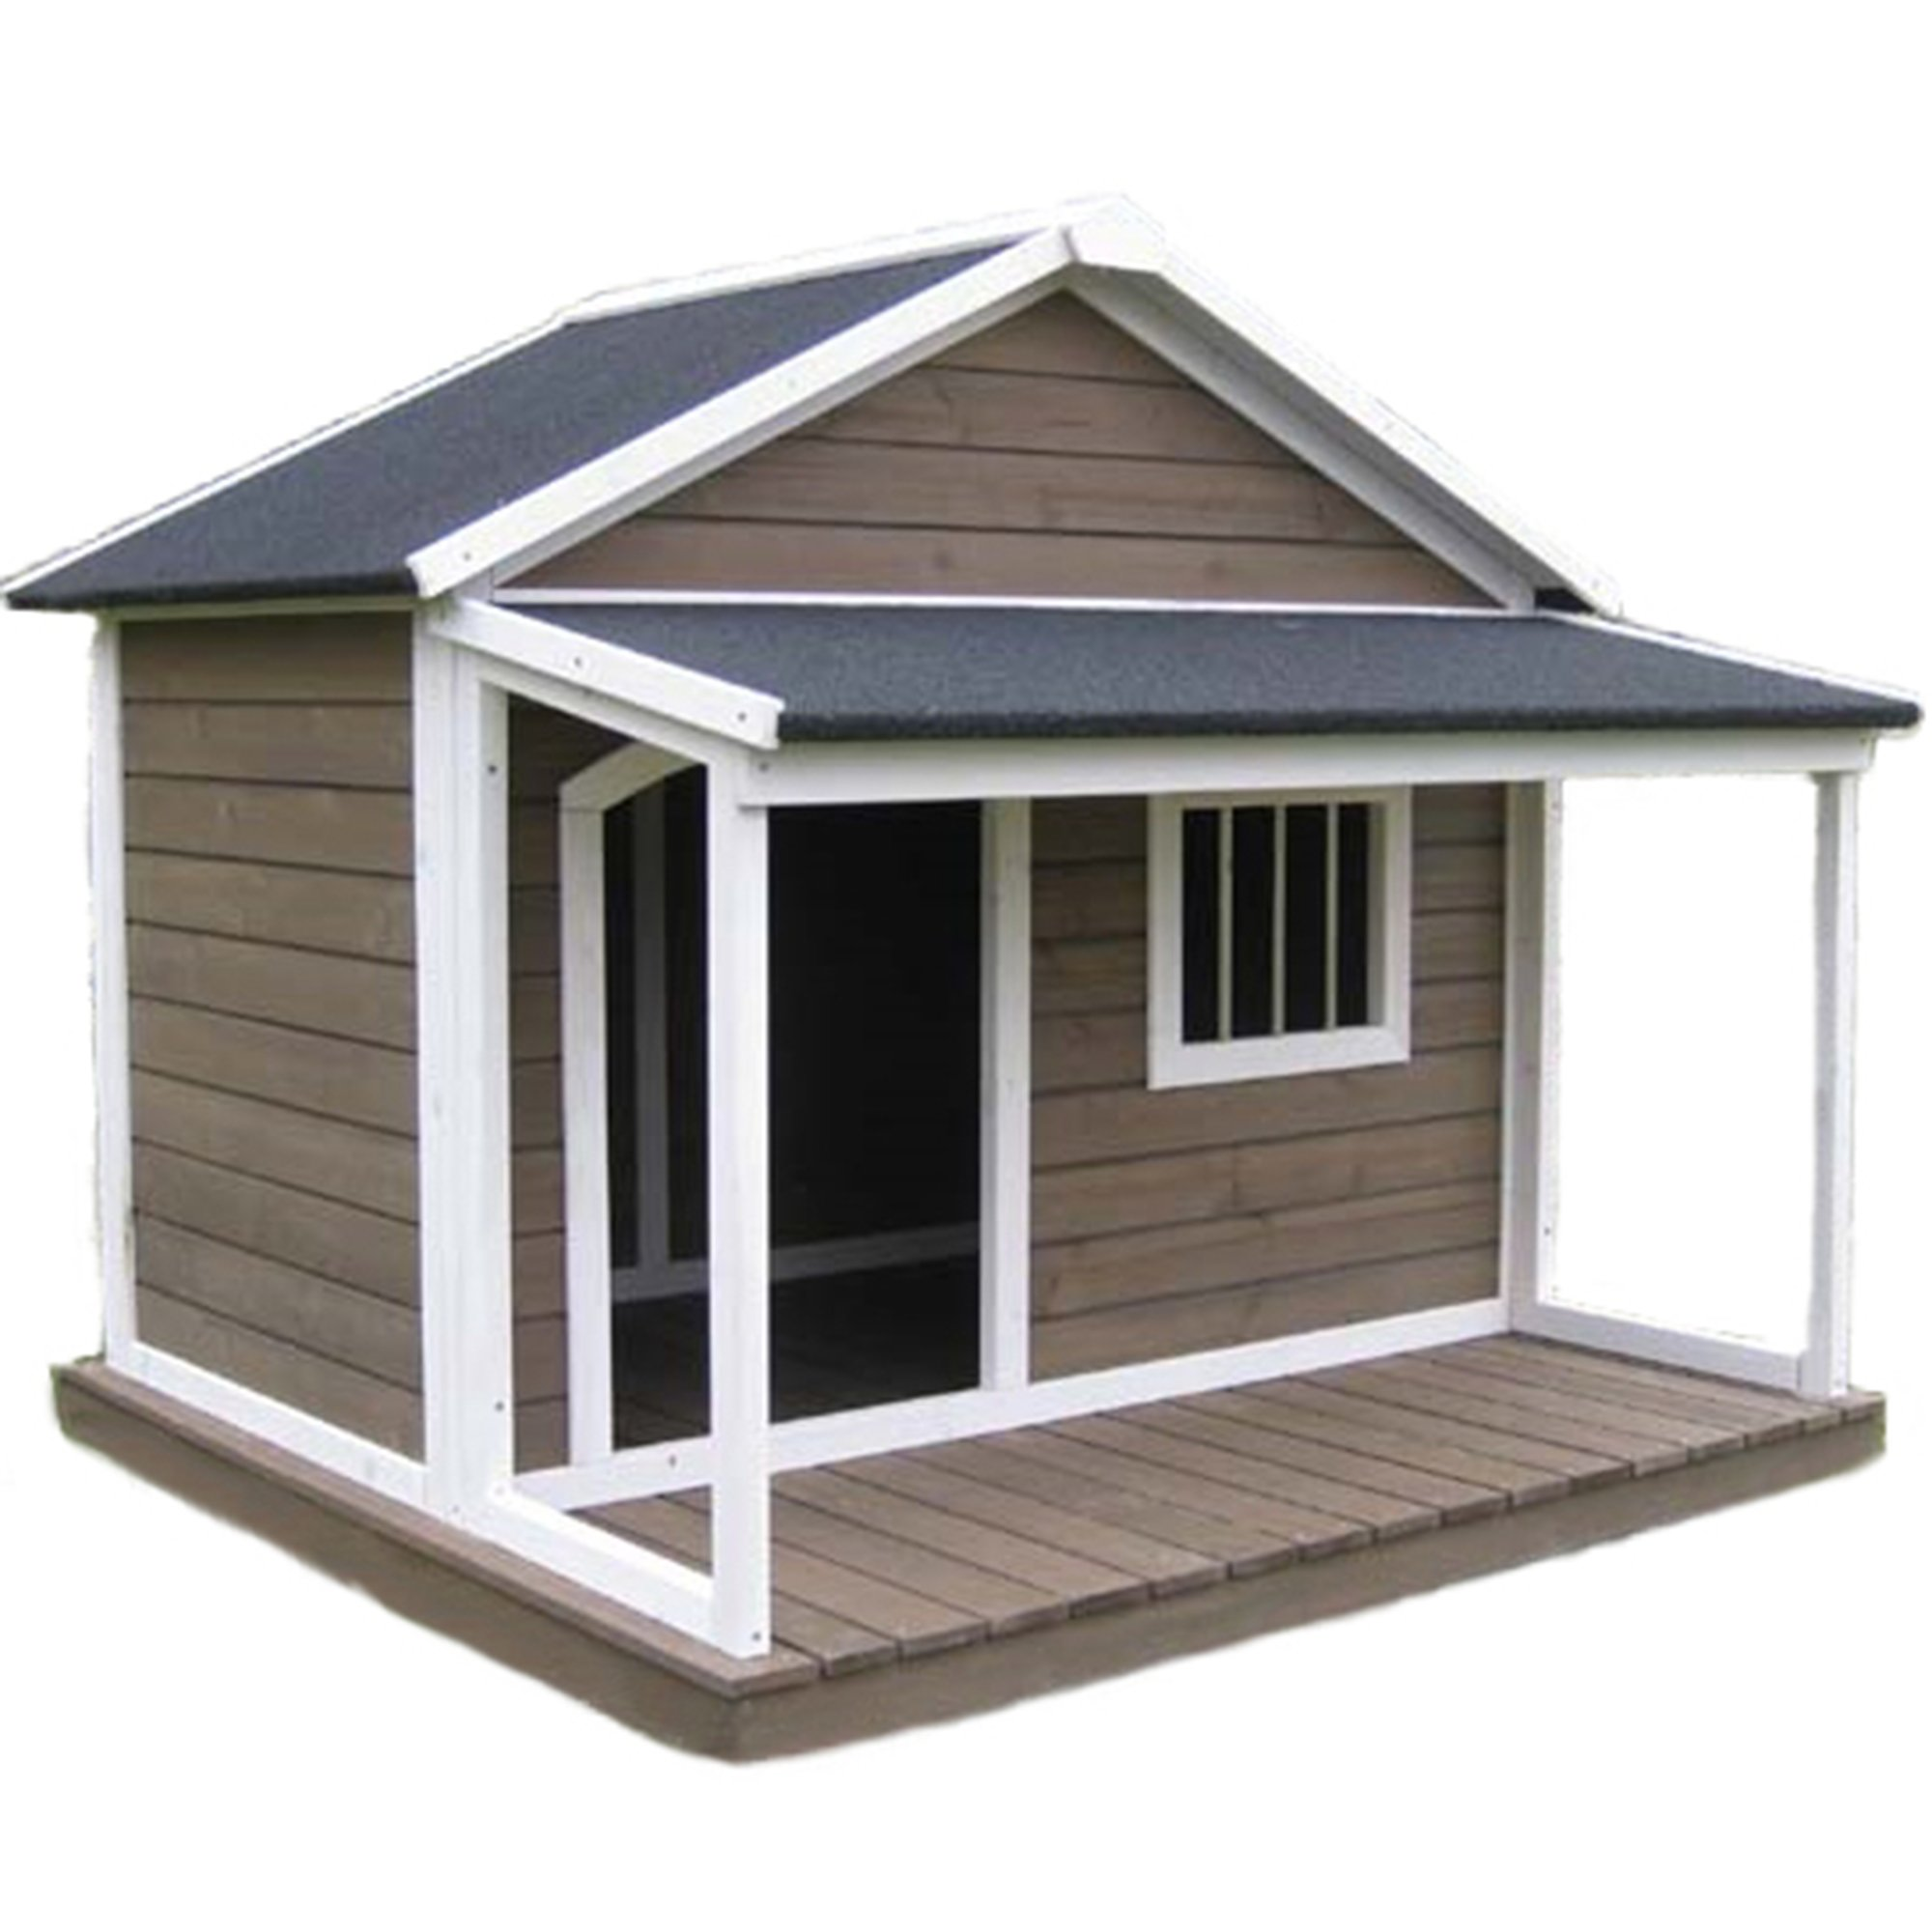 Houses & Paws Home Town Pet House